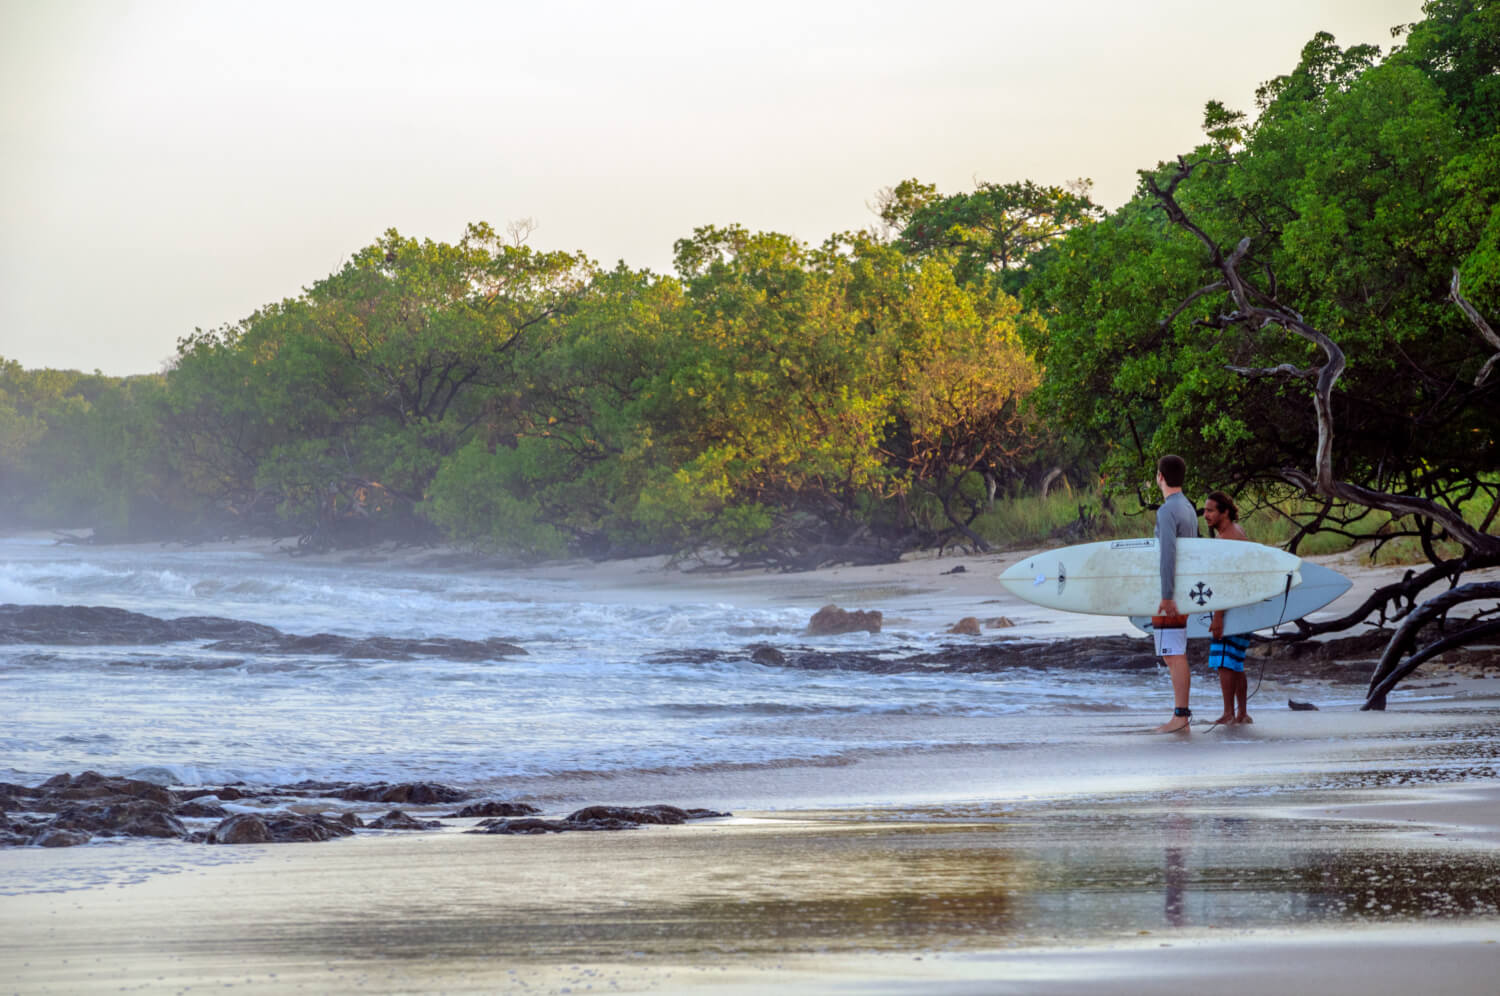 Playa Avellana, plages du Costa Rica